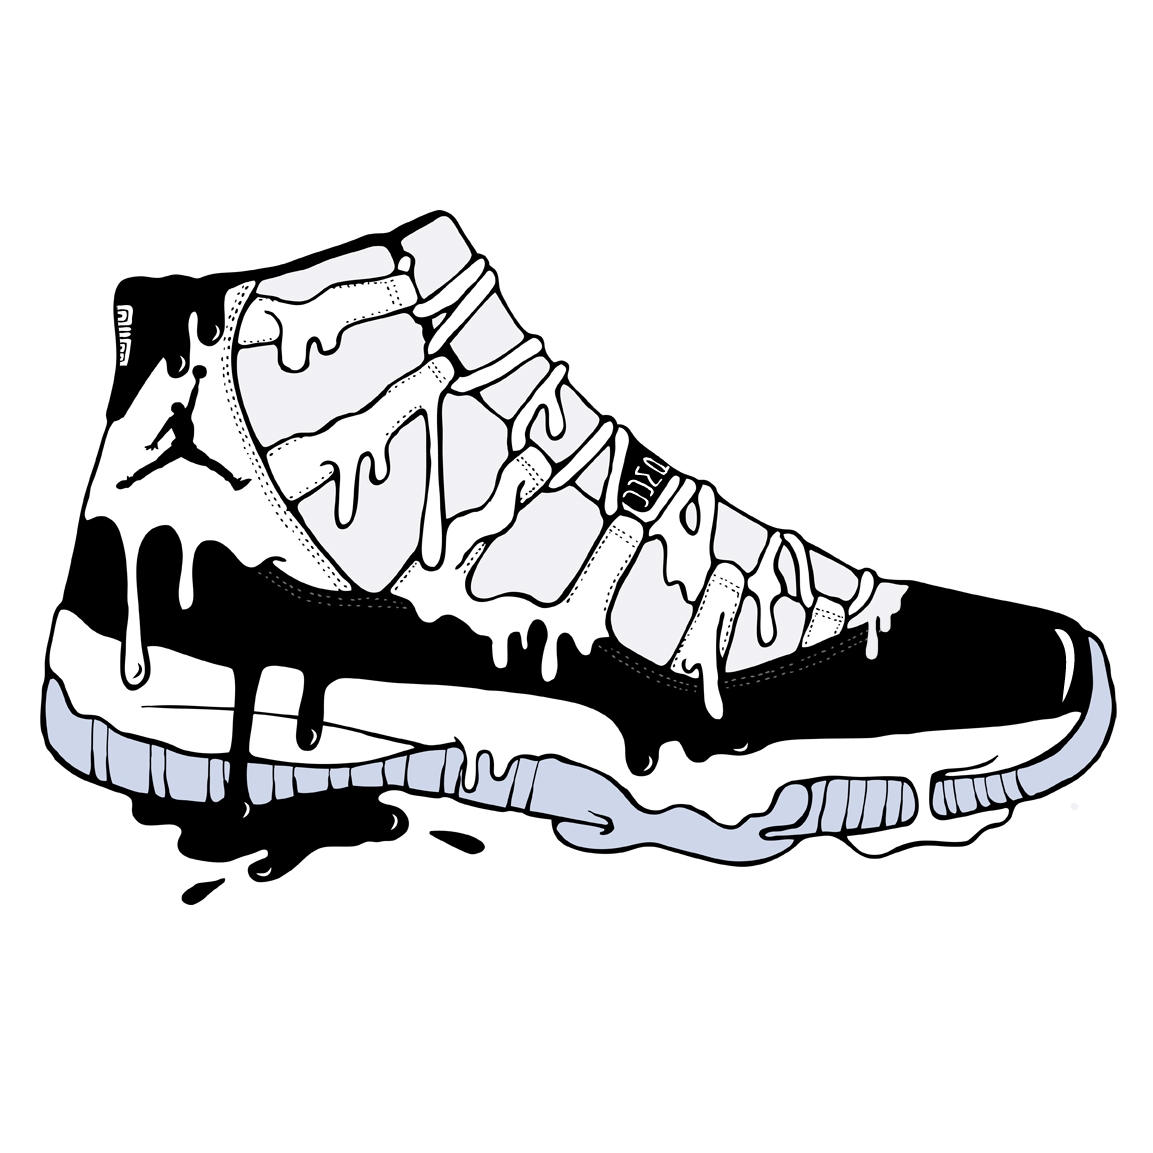 28 Jordan 11 Coloring Page Pictures